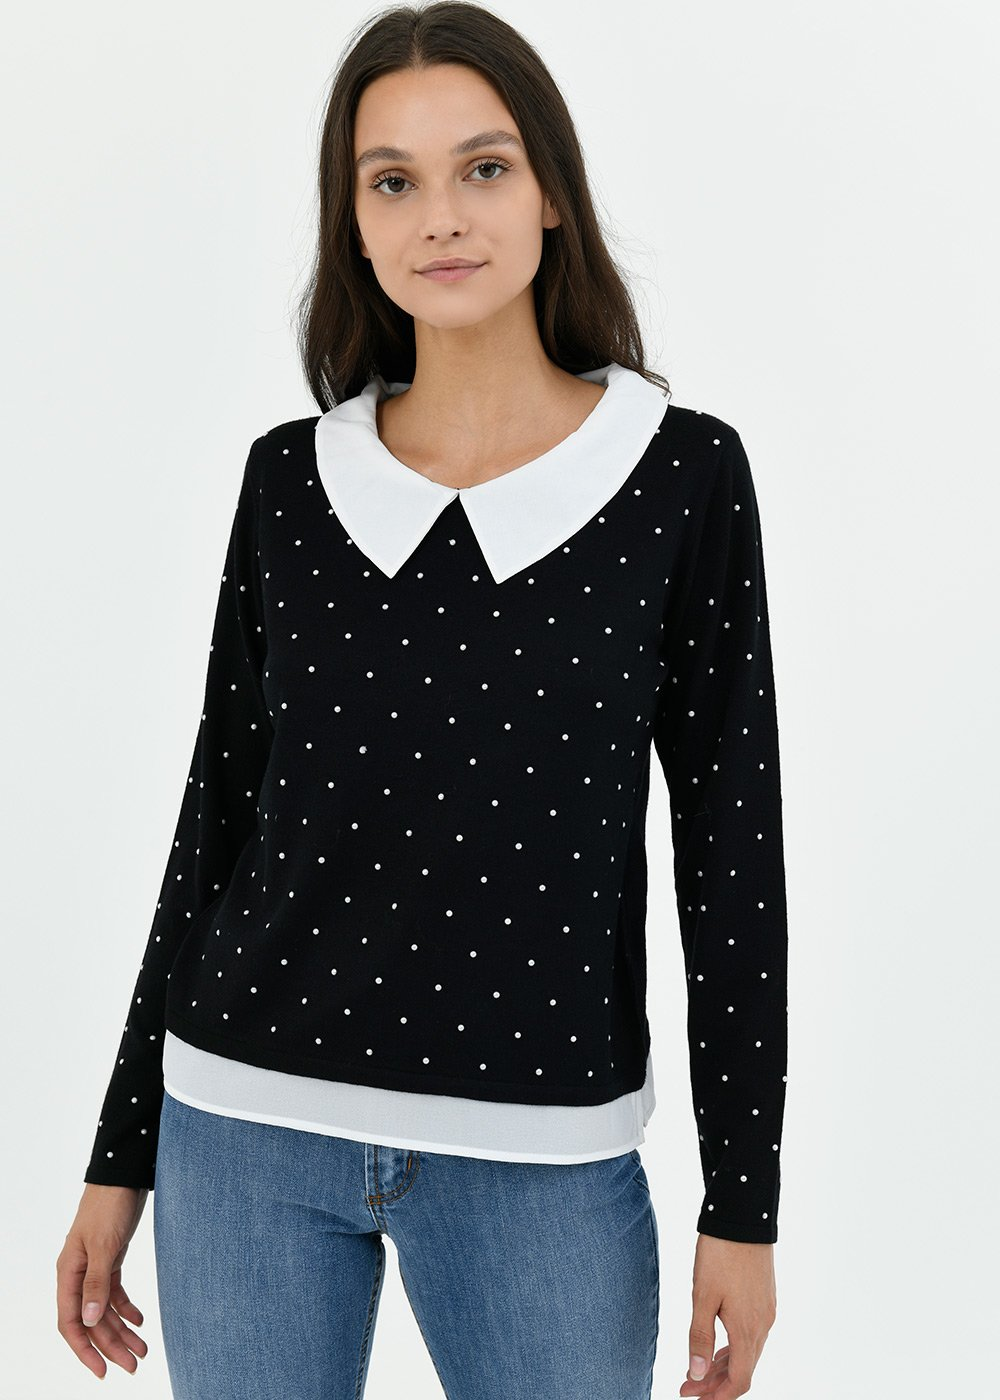 Marzia two-in-one sweater with stud detail - Black / White Pois - Woman